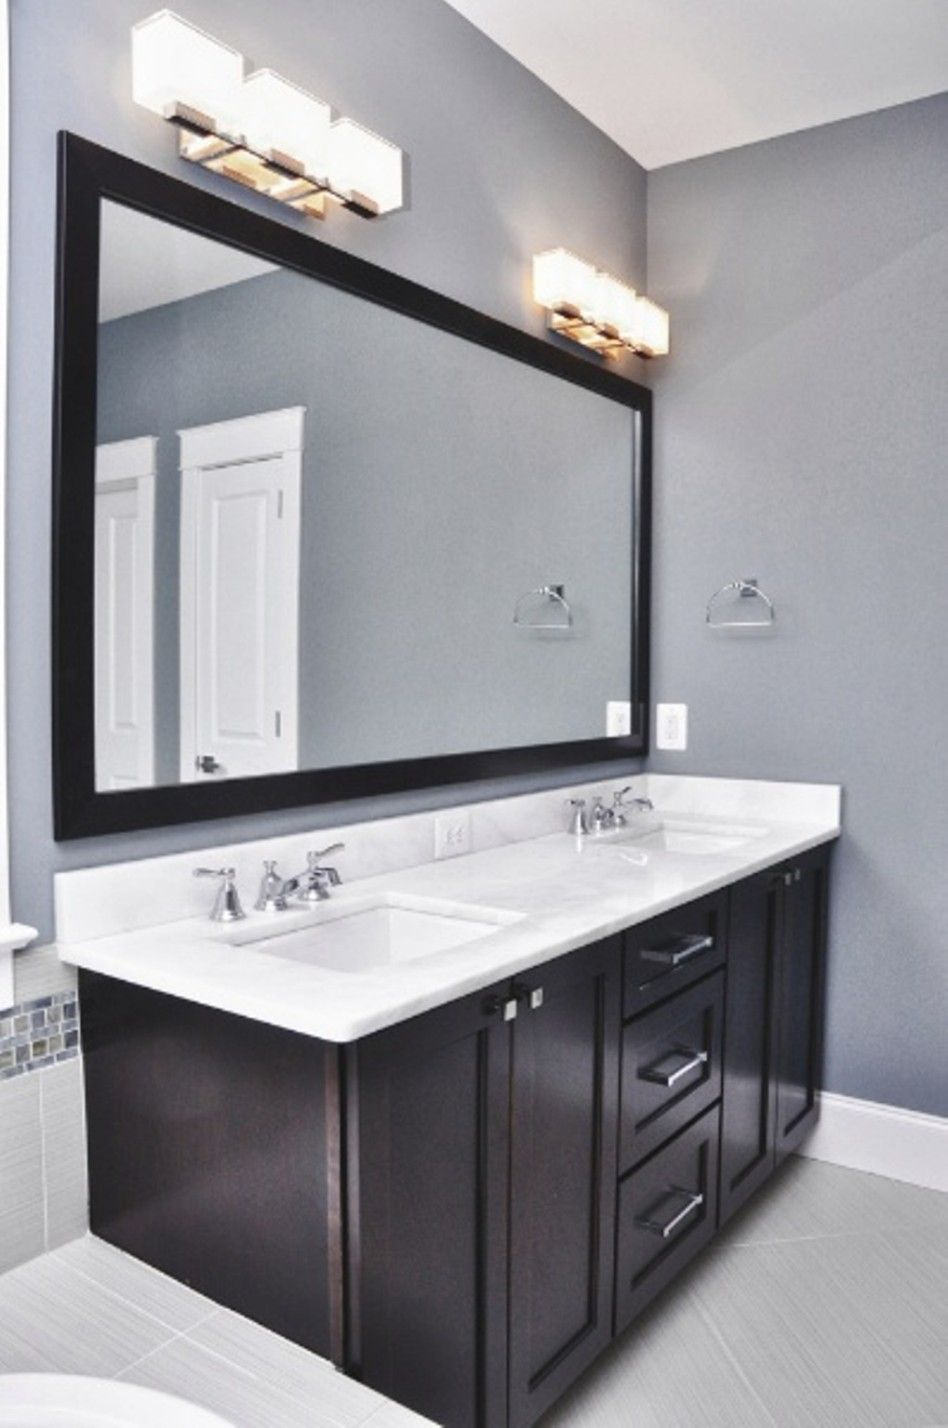 Modern Bathroom Light Fixtures Home Depot bathroom charming bathroom lighting fixtures over mirror: elagant